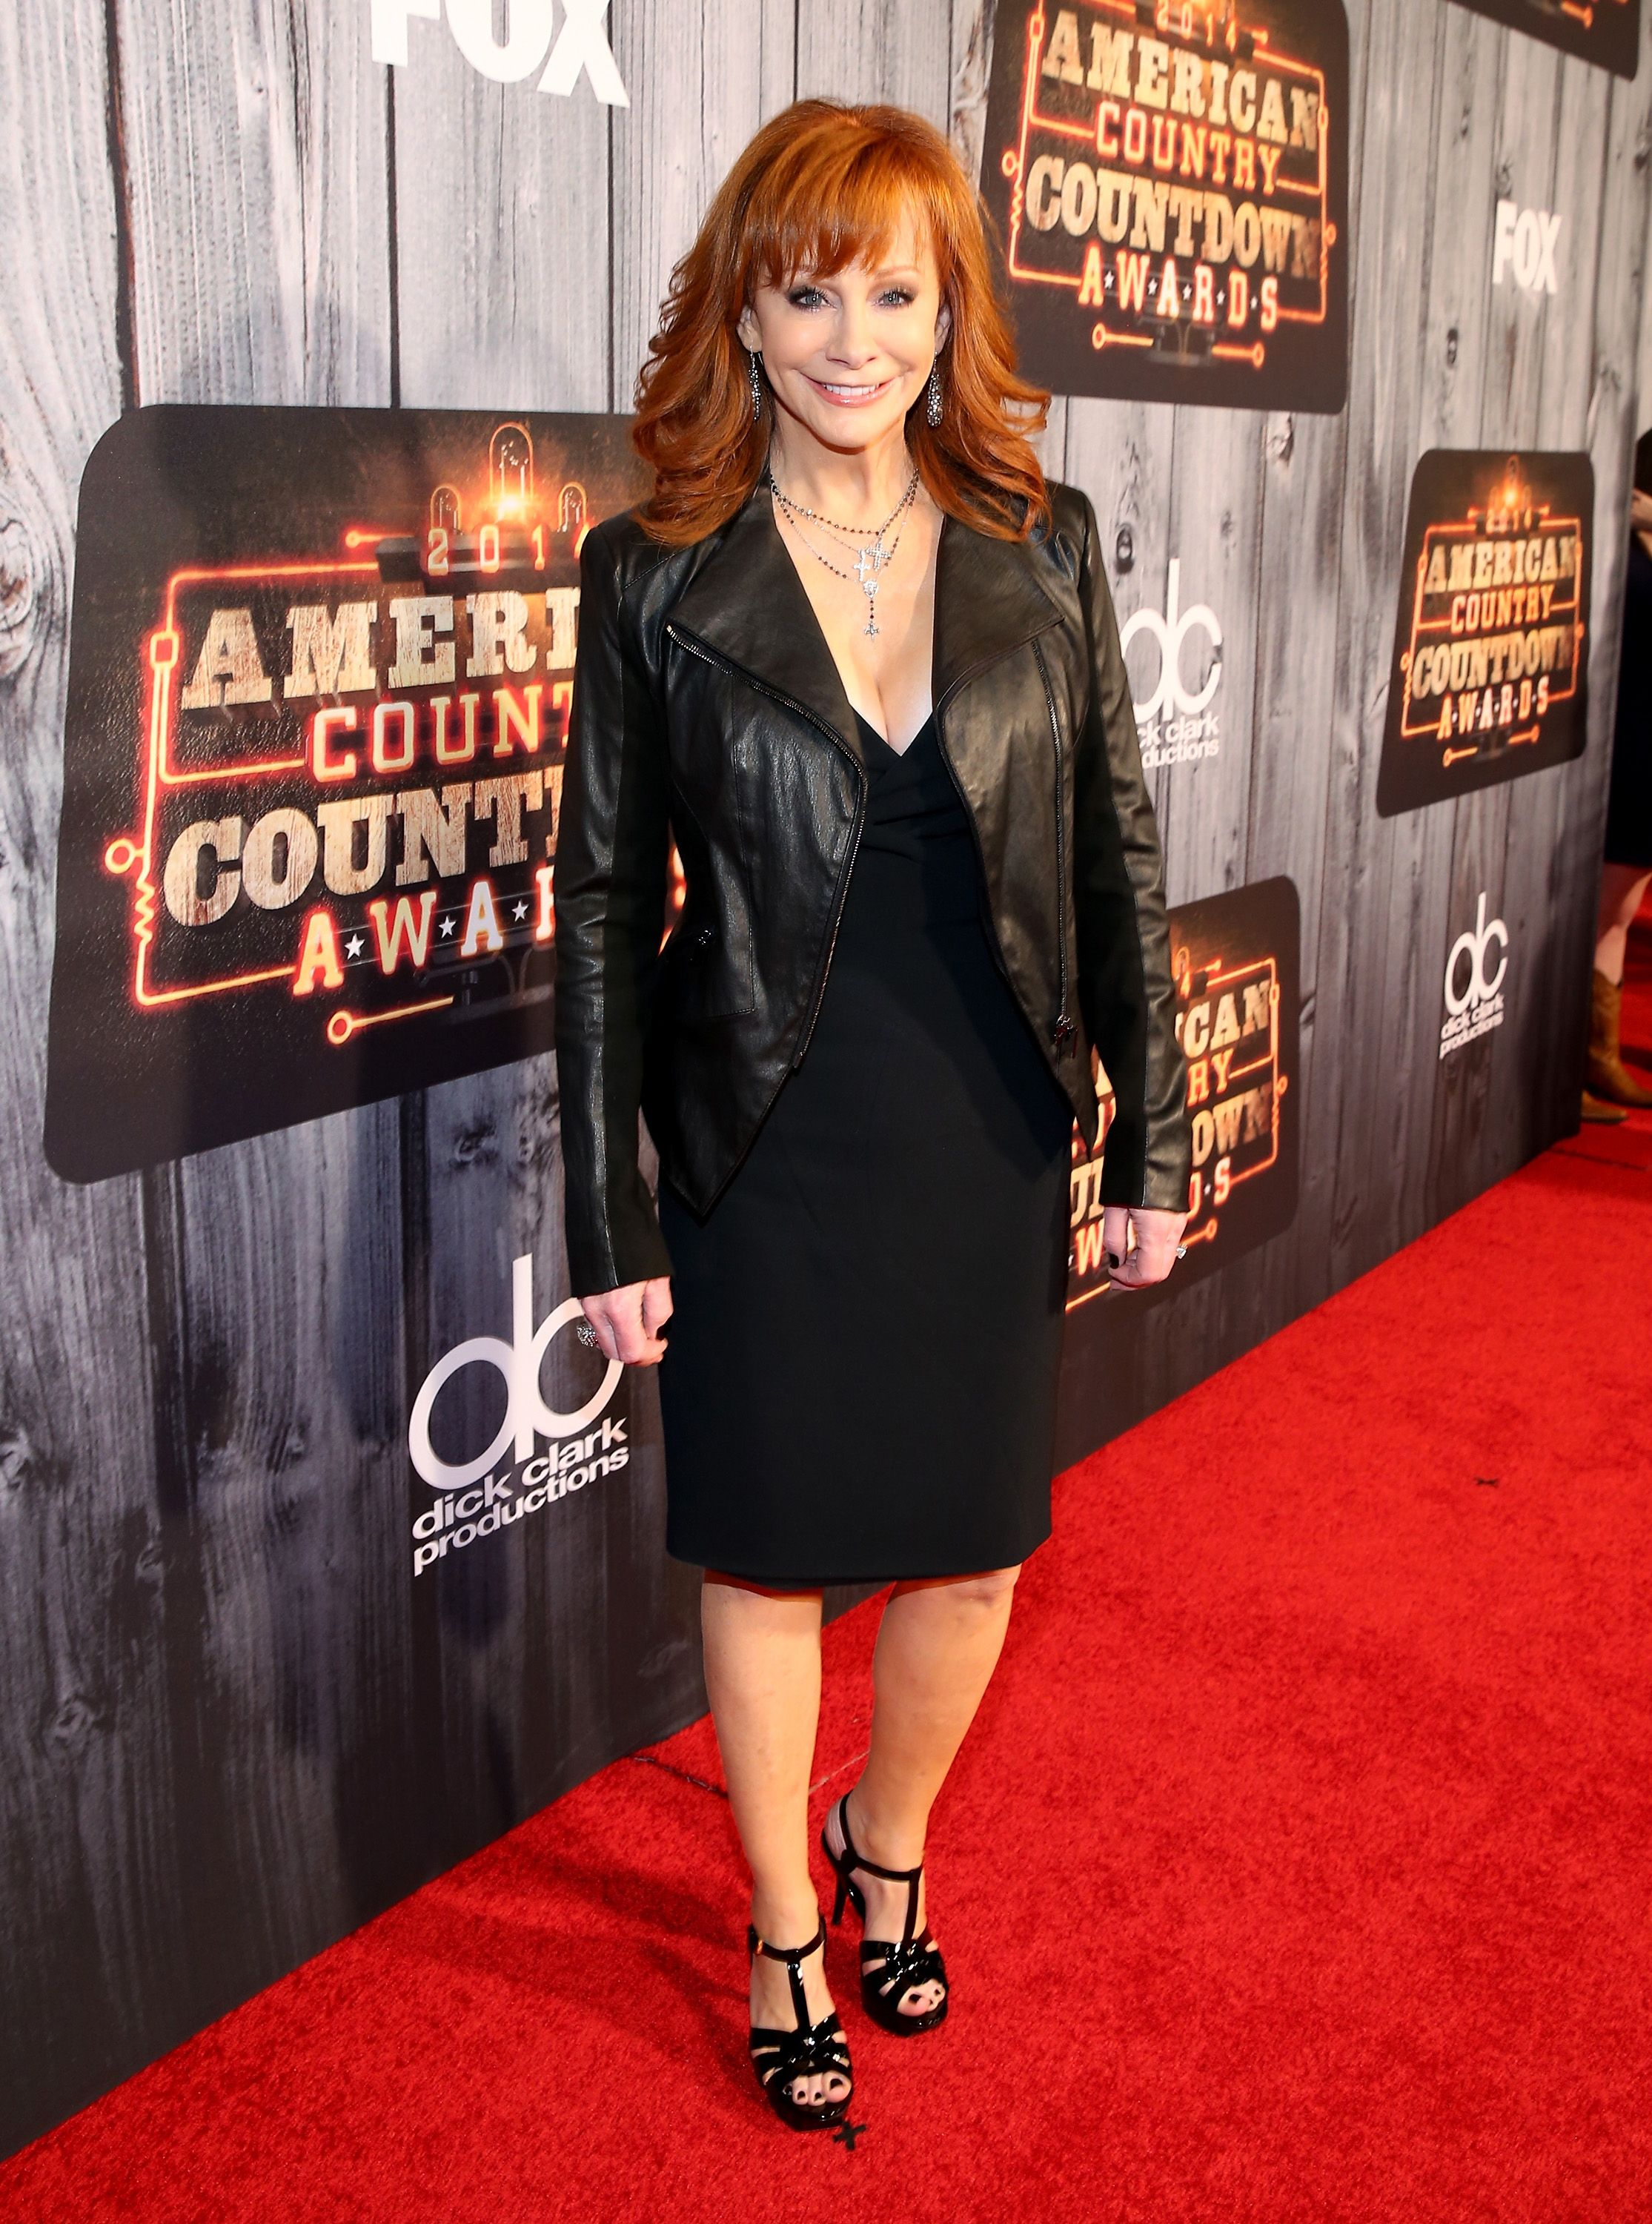 red American country music carpet awards